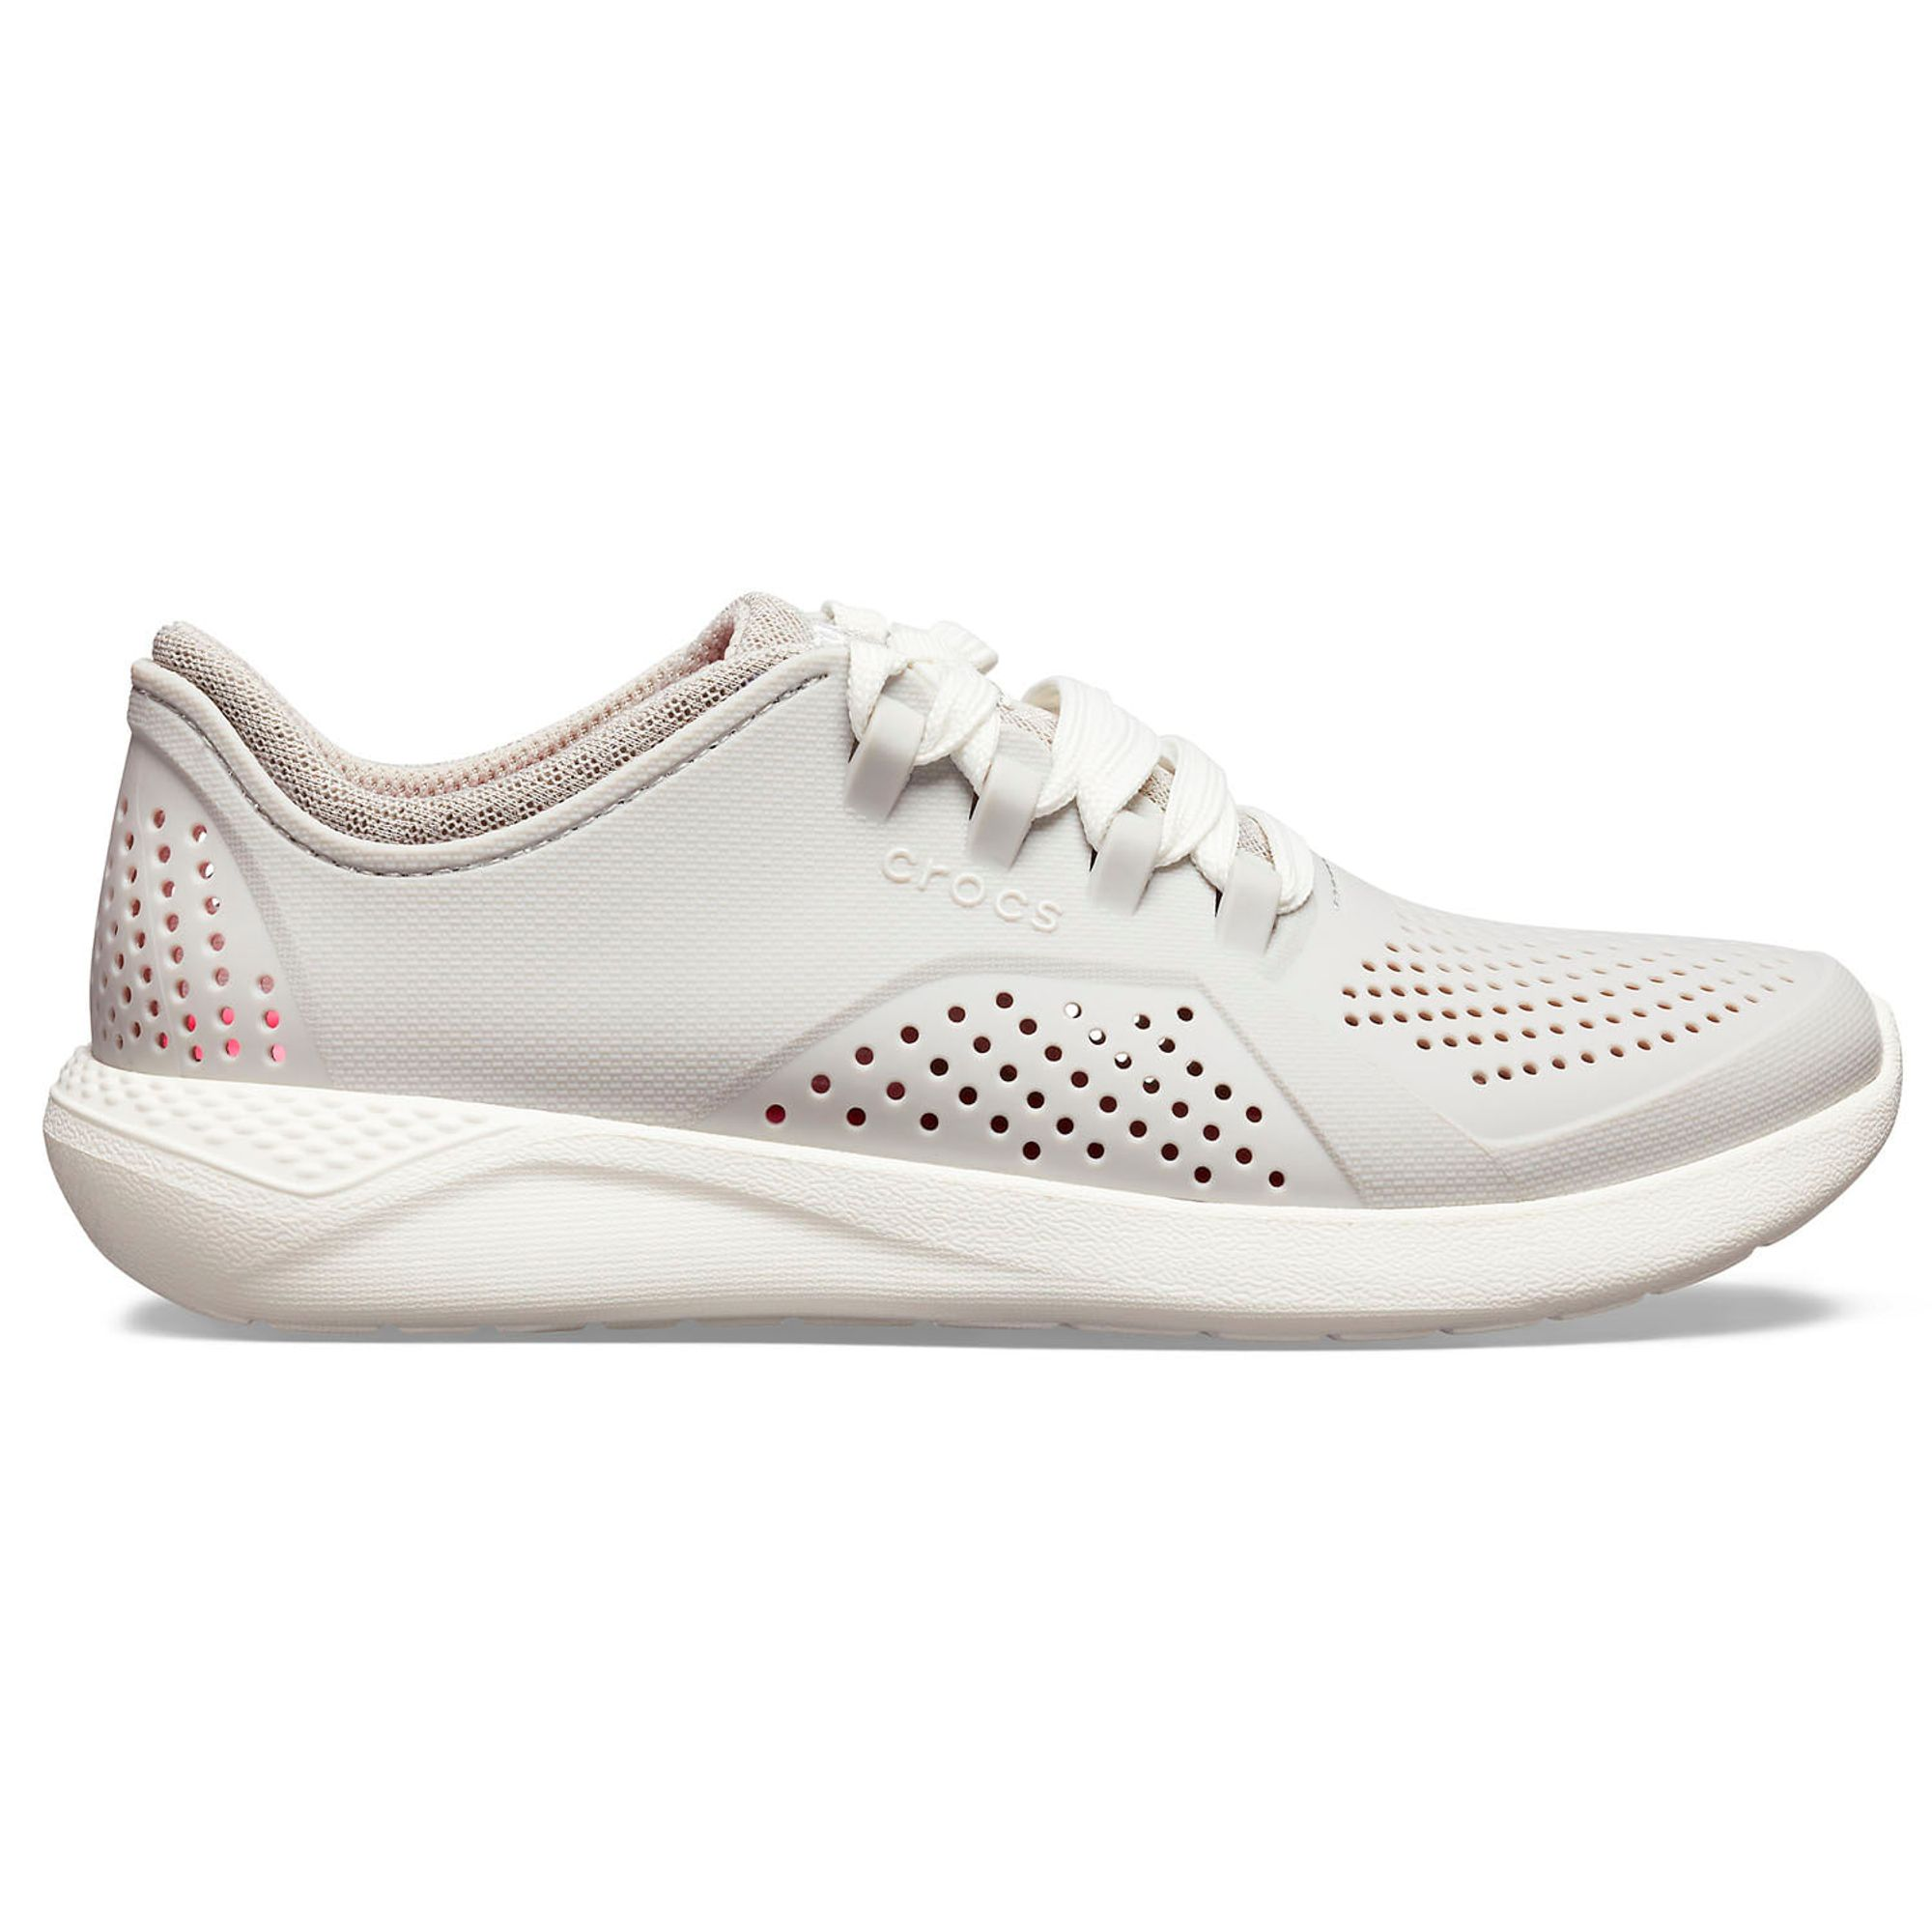 Womens-LiteRide-Pacer-Color-Gris-Talla-W8